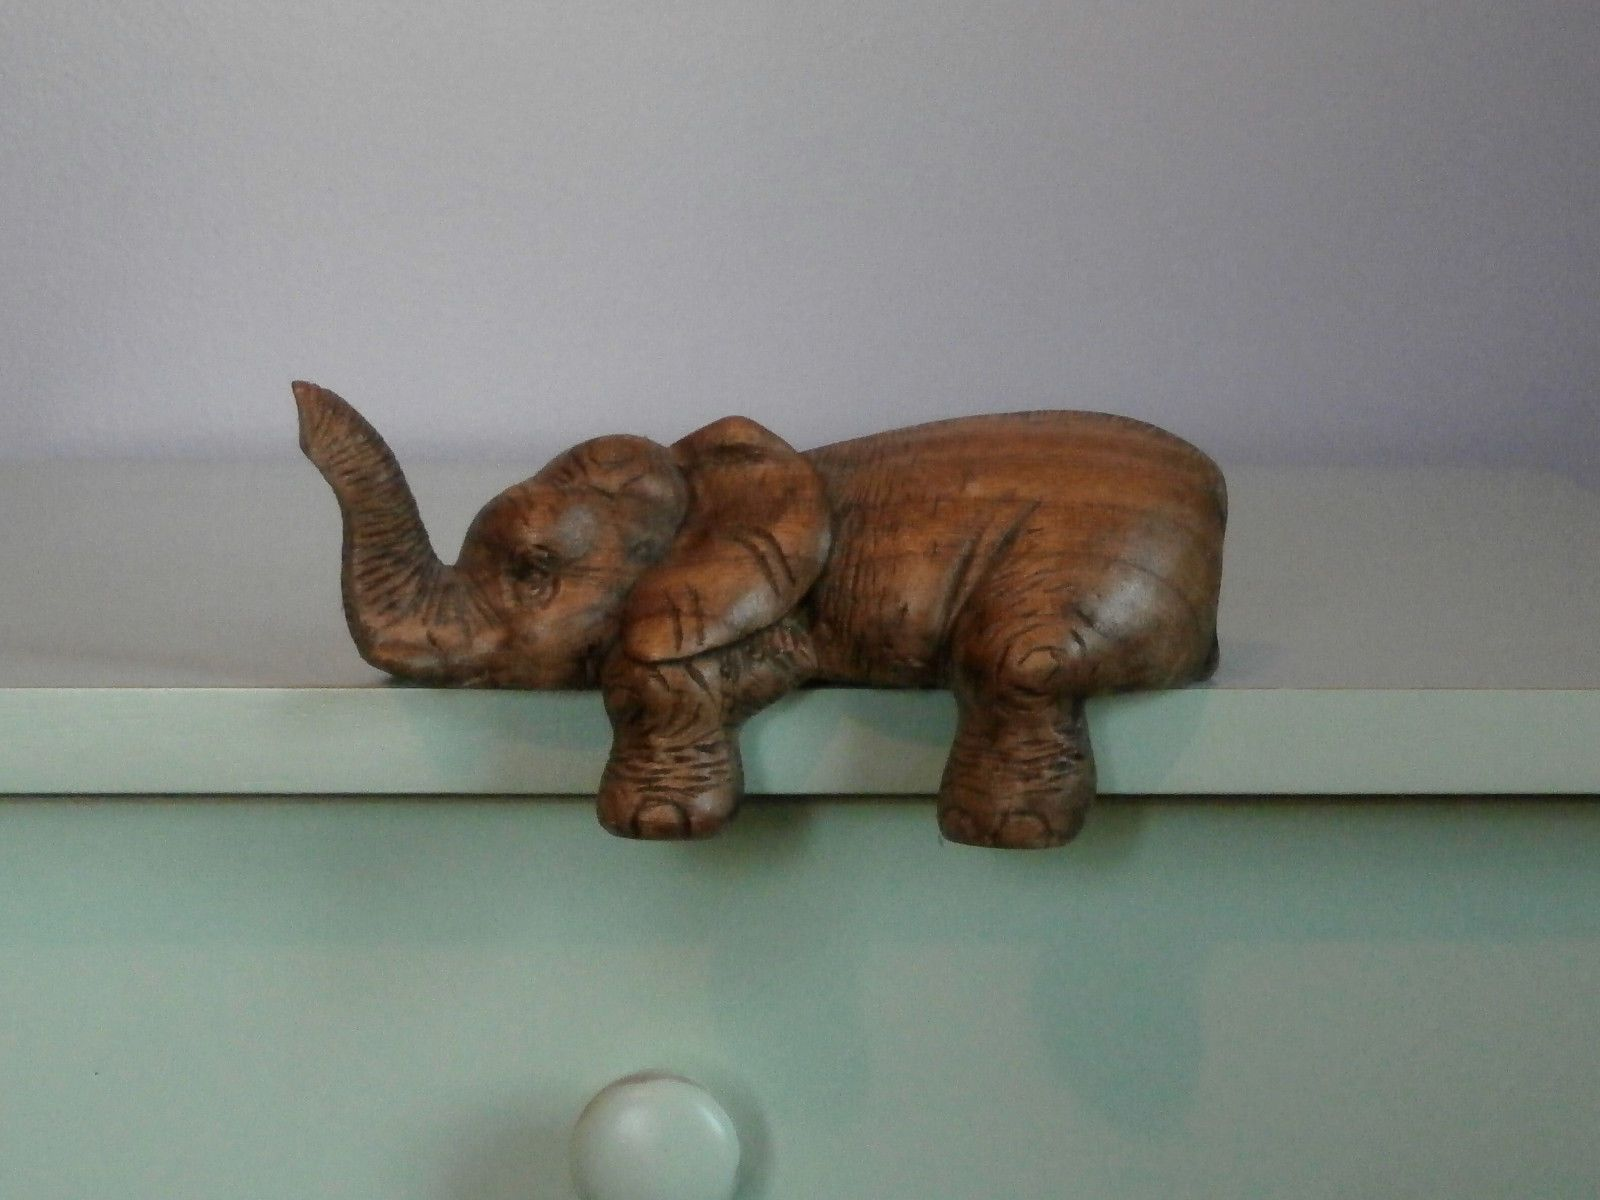 Elephant Shelf Sitter Hand Carved Wood picclick.com